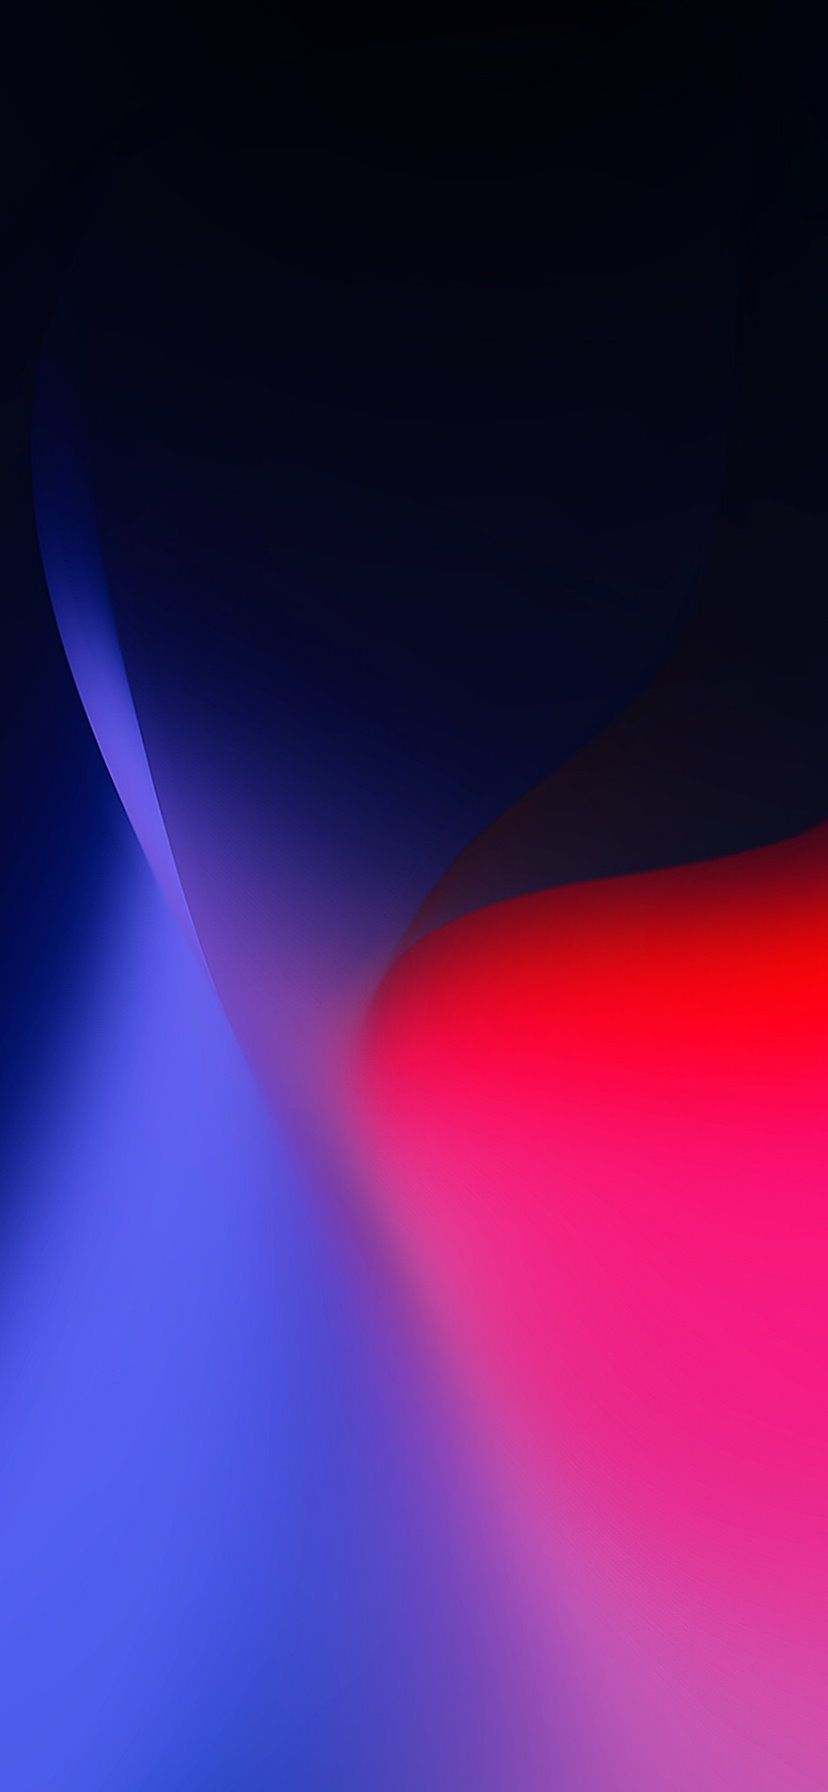 Wallpapers iPhone XR Pack 1 Papel de parede do iphone